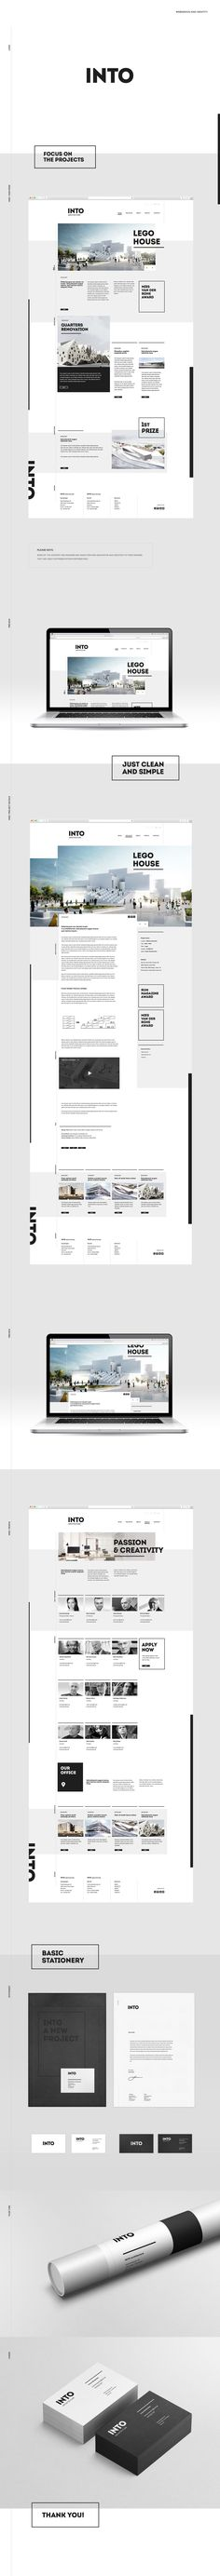 and branding concept for architecture office.INTO Architecture Irena N. - webdesign and branding concept for architecture office.INTO Architecture Irena Nowacka: hance -webdesign and branding concept for architecture of. Ios App Design, Web And App Design, Site Web Design, Design Sites, Web Design Mobile, Layout Design, Design De Configuration, Interaktives Design, Web Layout